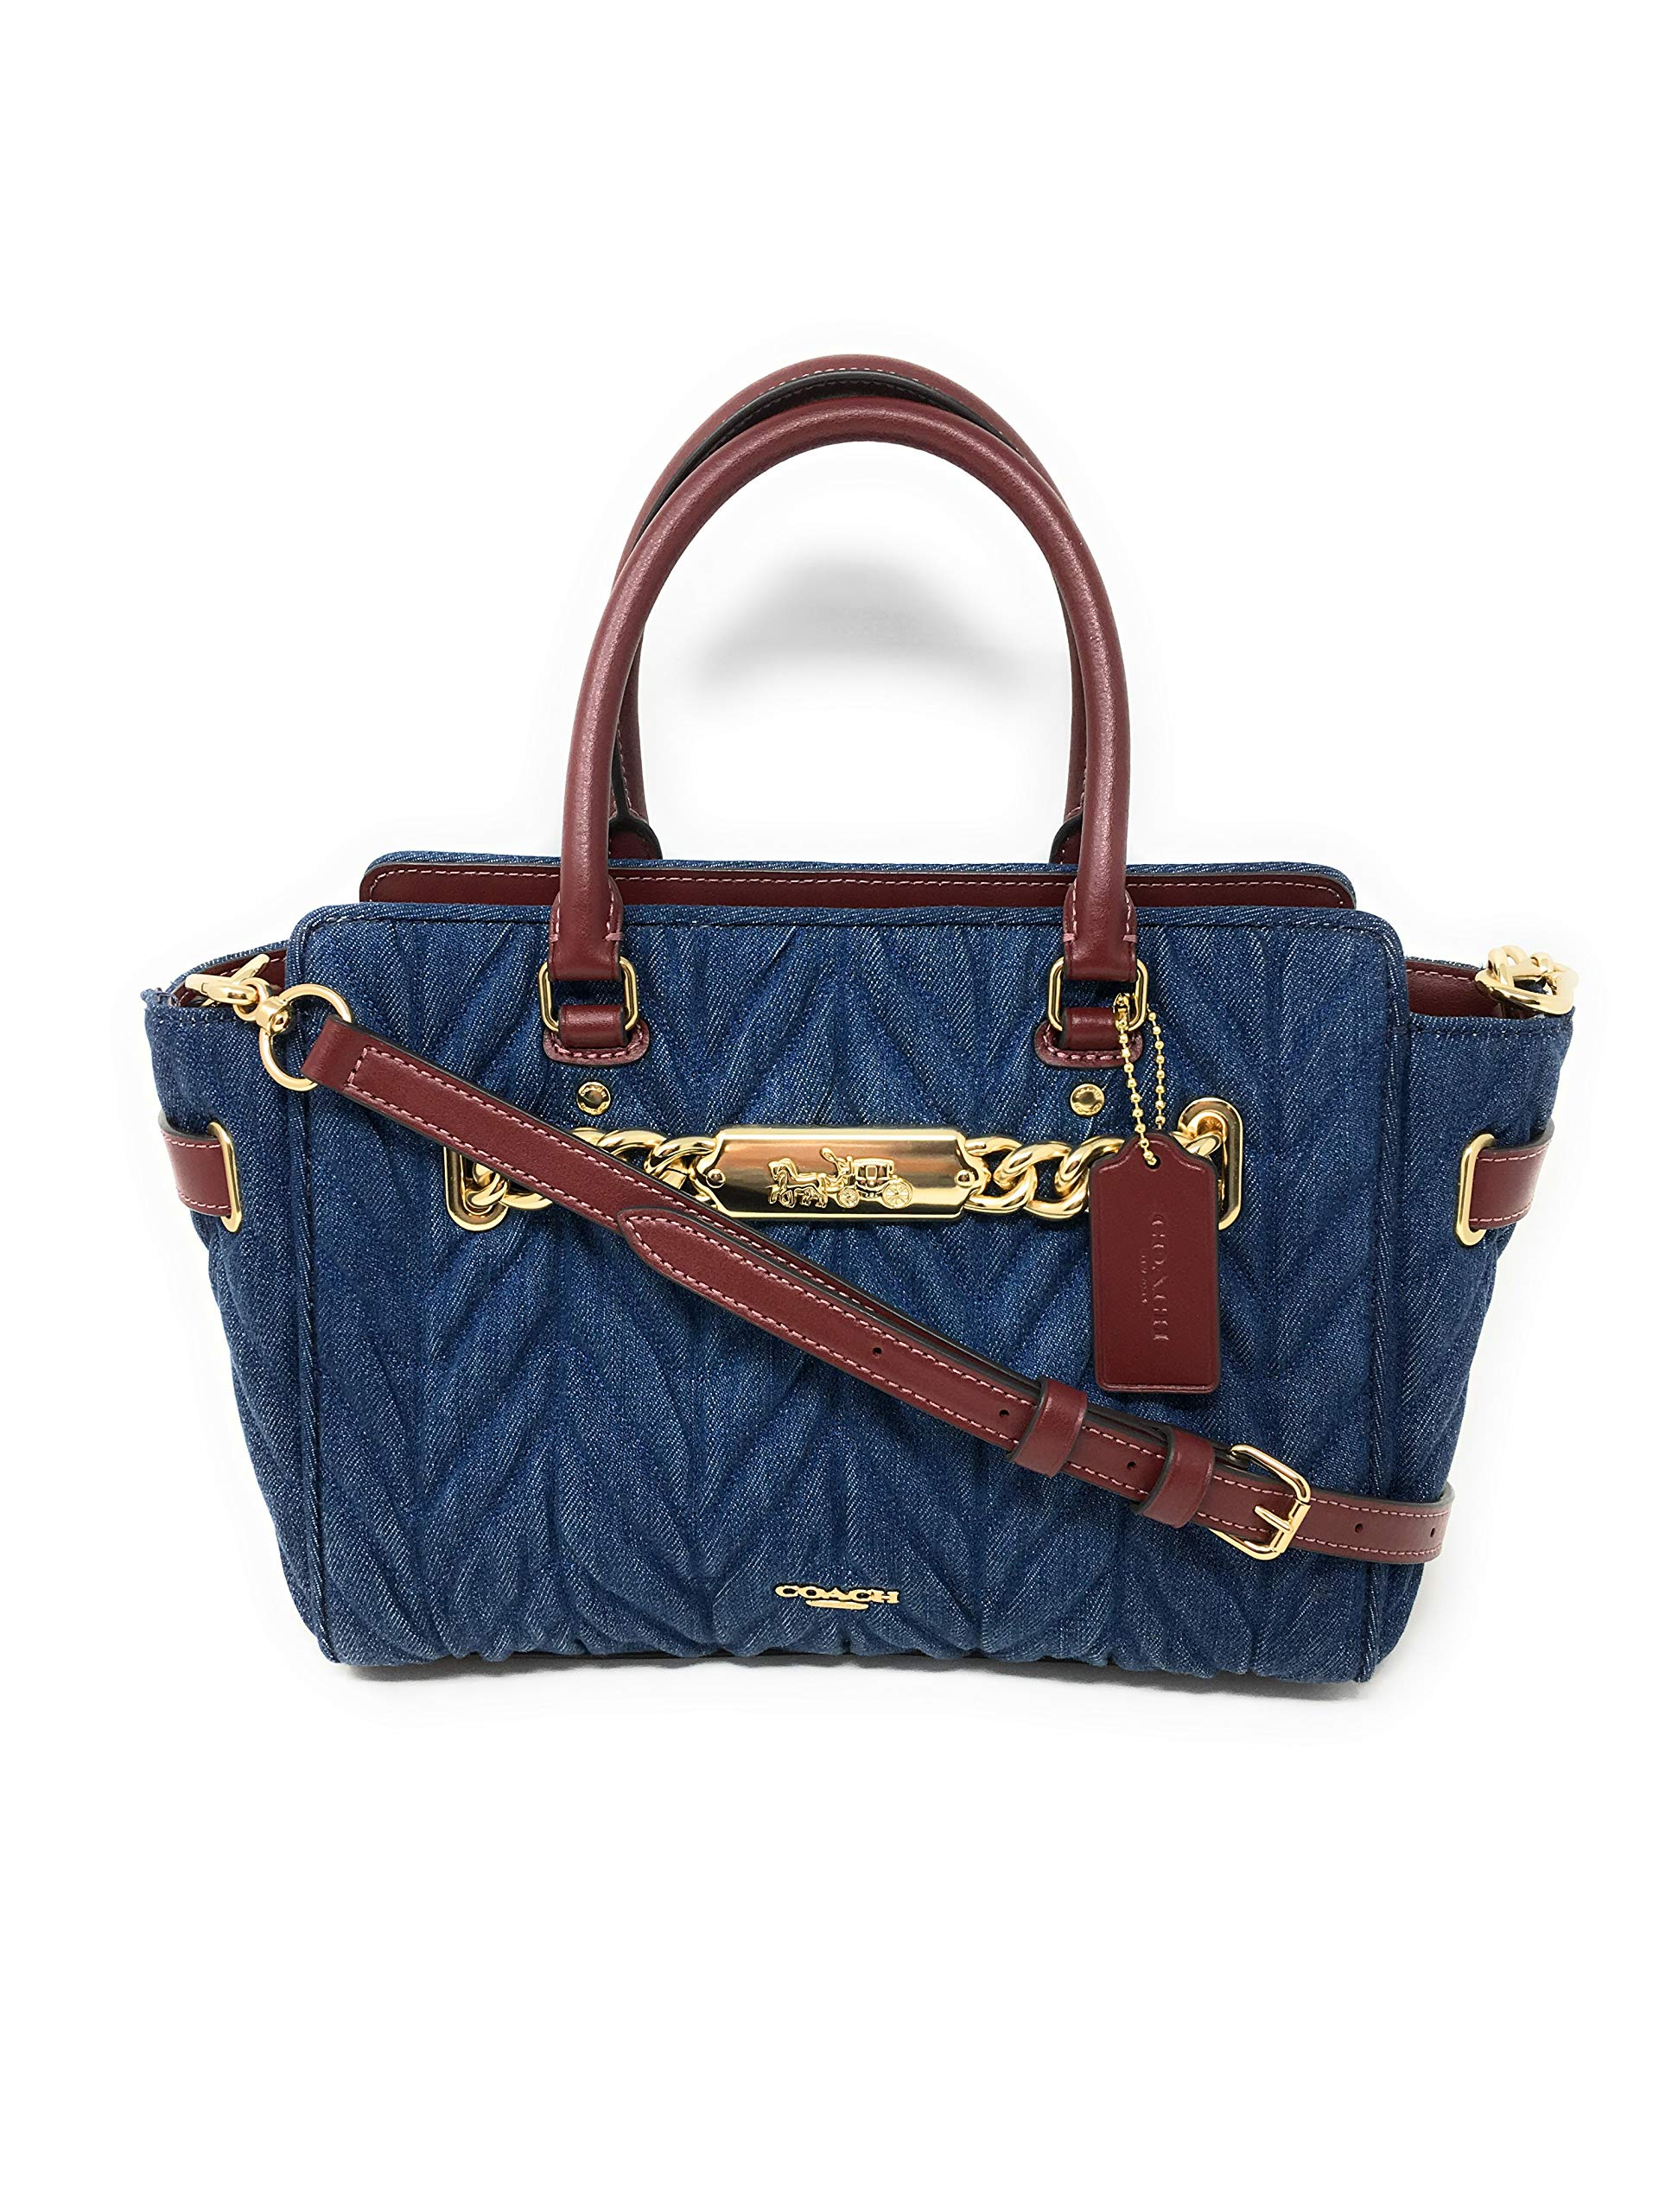 COACH F39905 BLAKE CARRYALL 25 WITH QUILTING DENIM by Coach (Image #1)